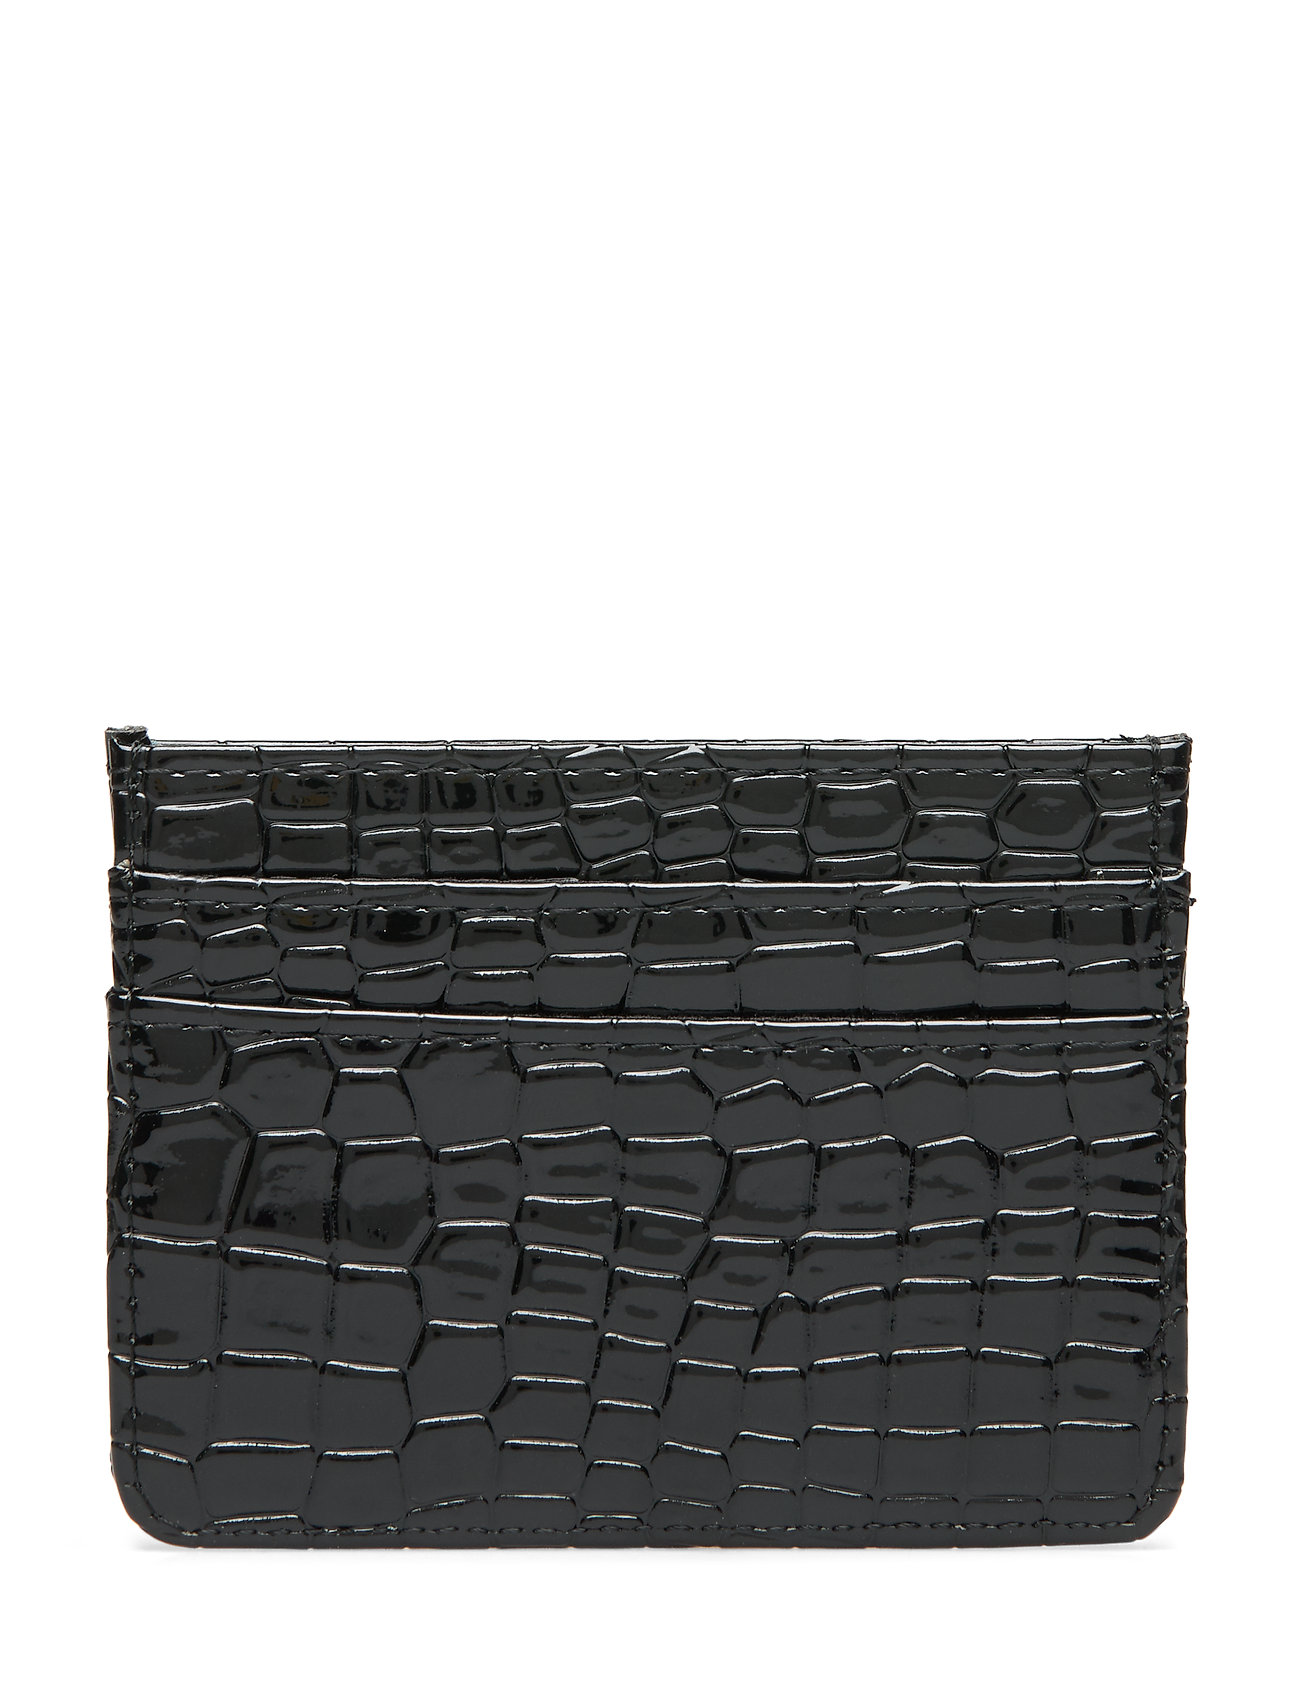 Hvisk CARD HOLDER CROCO - BLACK